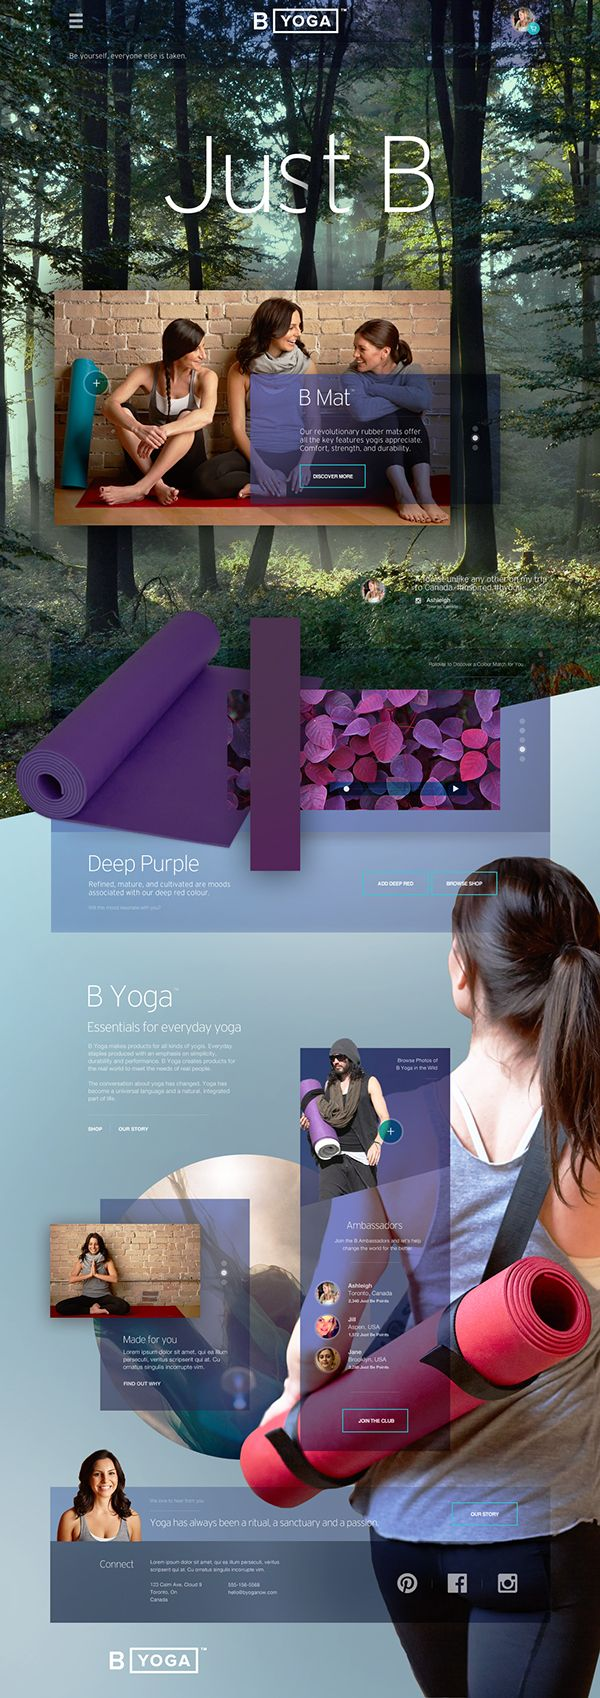 B Yoga Website. Website design layout. Inspirational UX/UI design samples.  Visit us at: www.sodapopmedia.com #WebDesign #UX #UI #WebPageLayout #DigitalDesign #Web #Website #Design #Layout